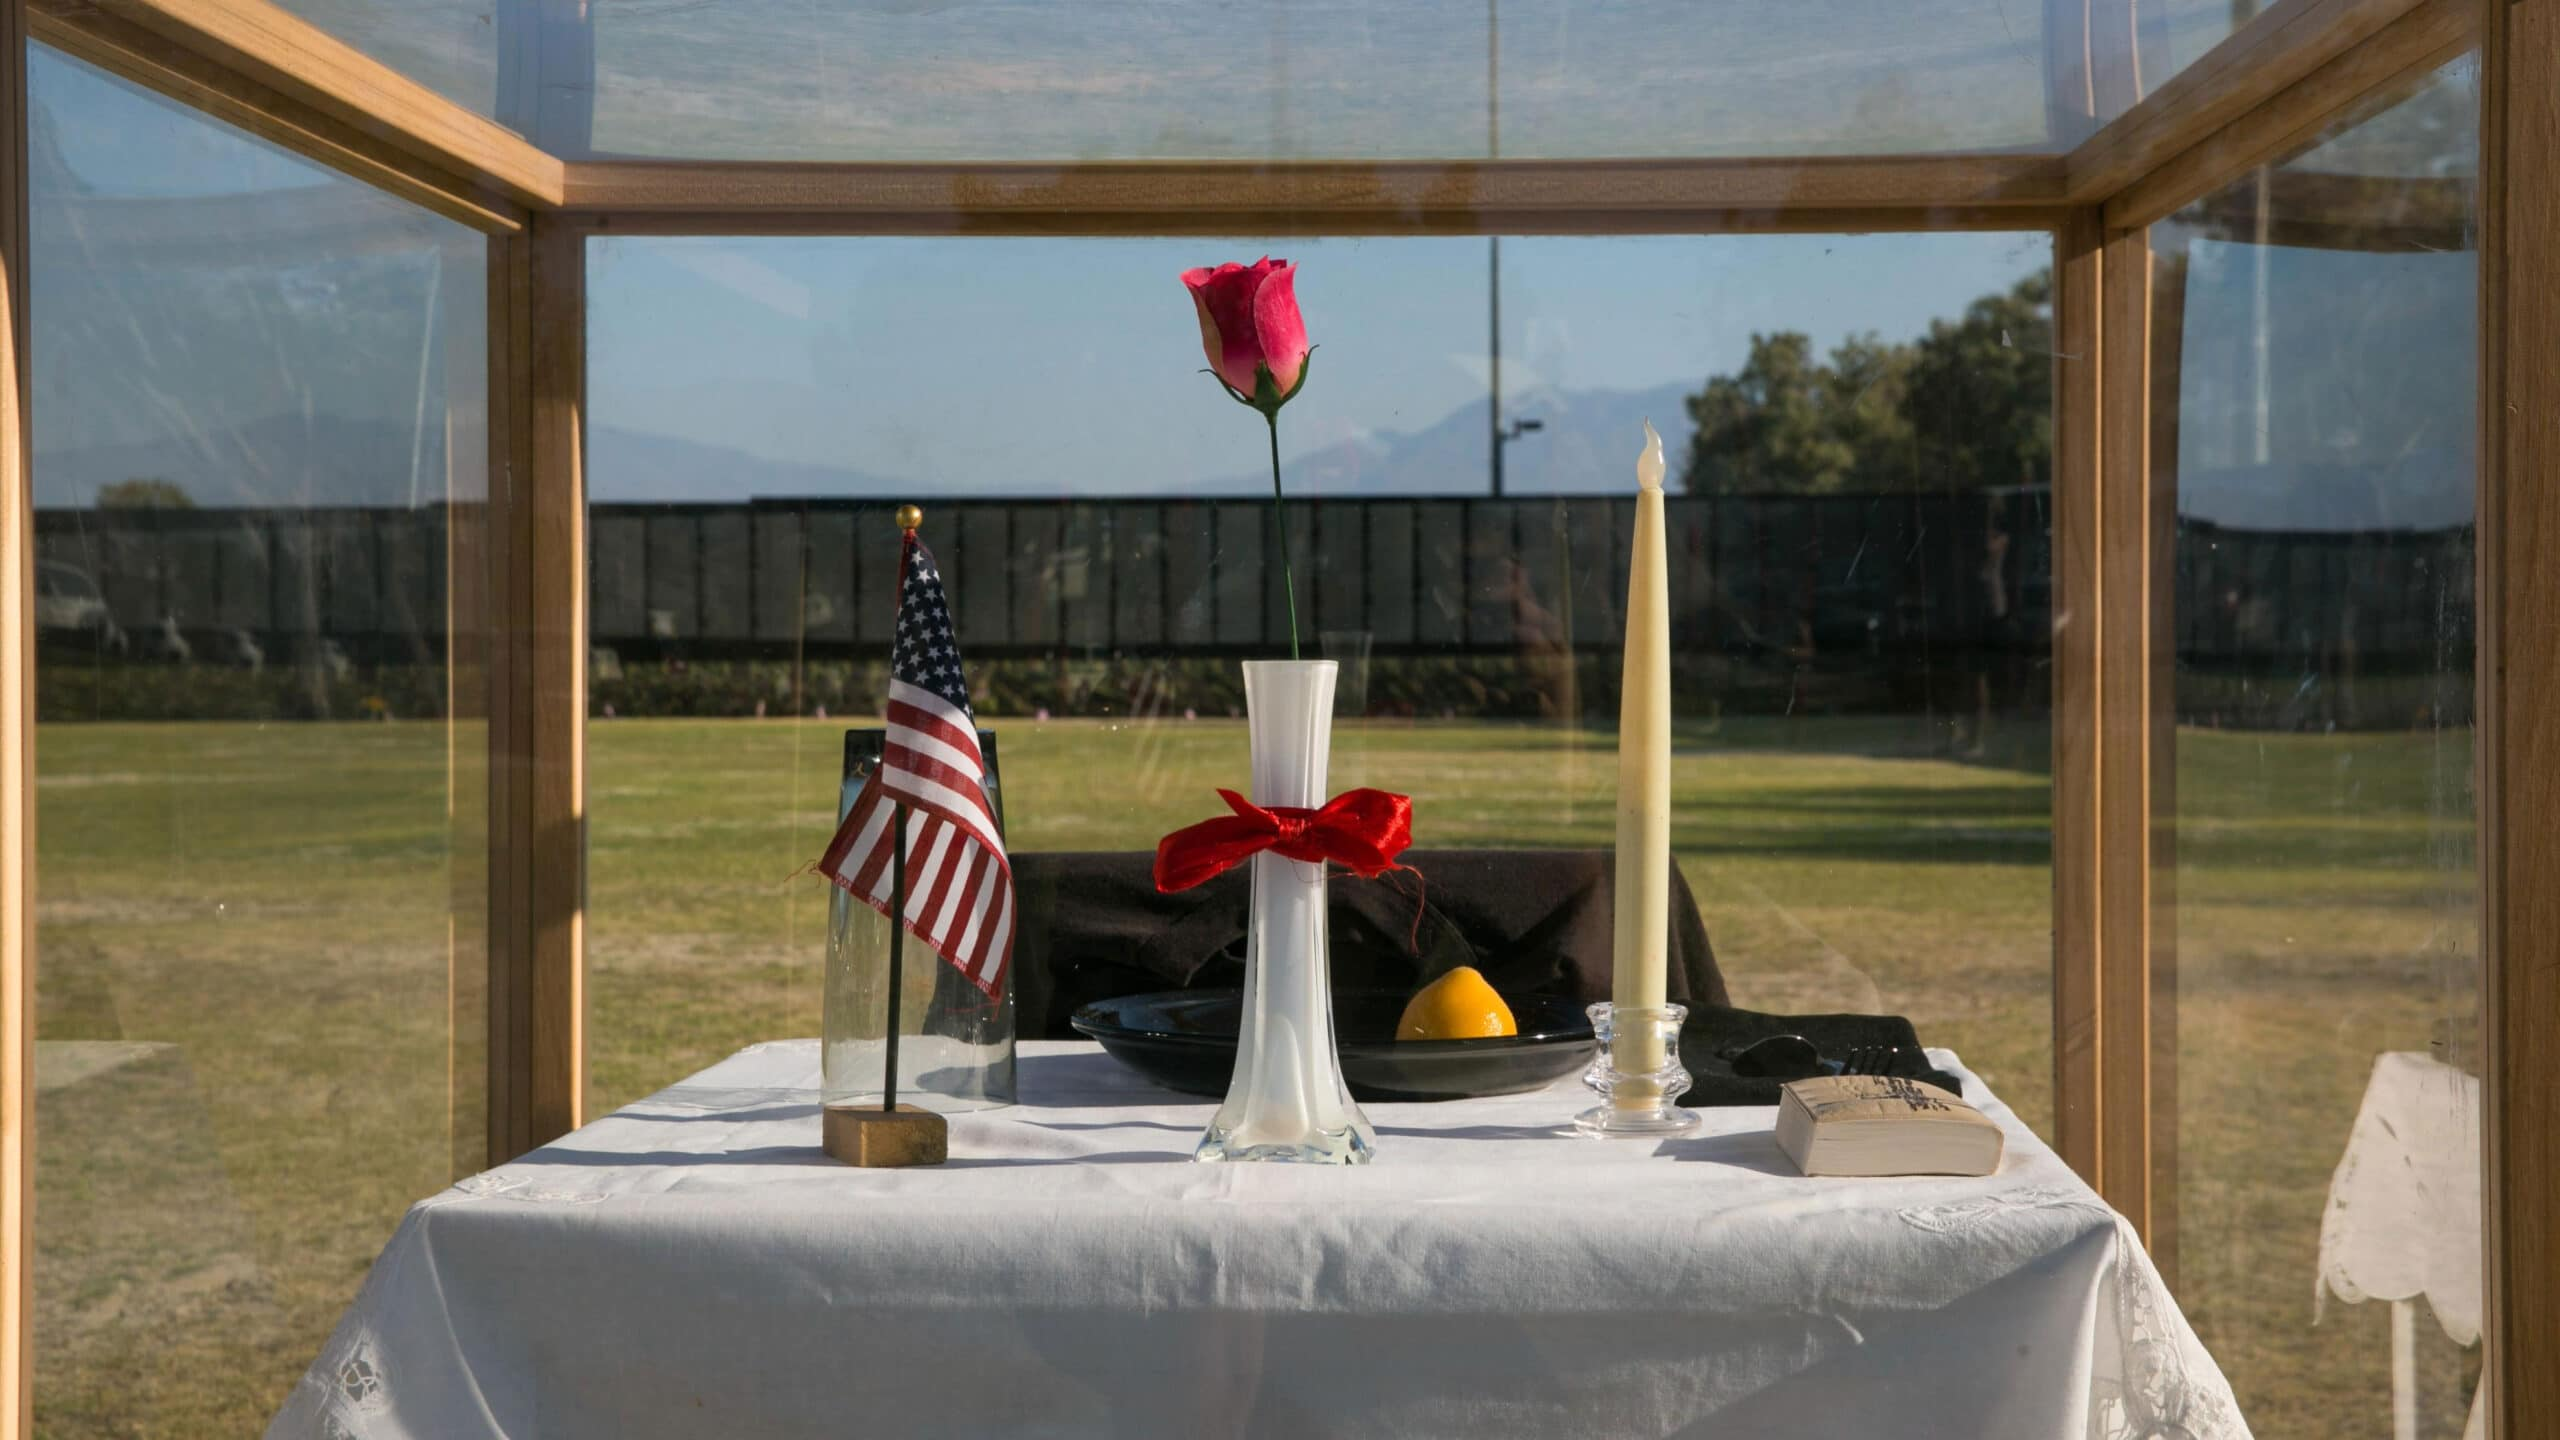 The Prisoner of War/Missing in Action table represents the service members who never had a chance to make it home or could not be found at the opening program of the Moving Vietnam Veterans Memorial Wall at Mission Springs Park in Desert Hot Springs, California.